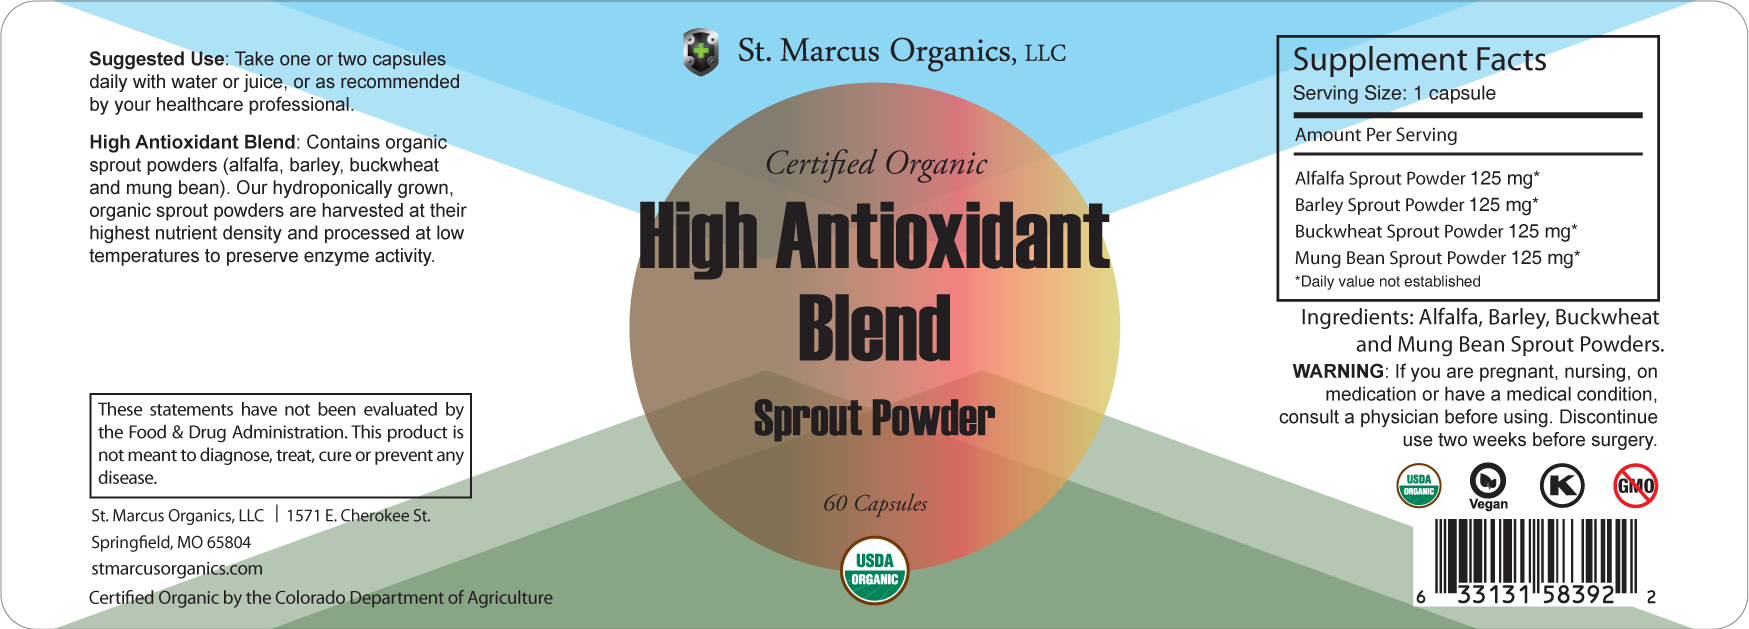 High-Antioxidant-Sprout-Powder-Capsules-St-Marcus-Organics